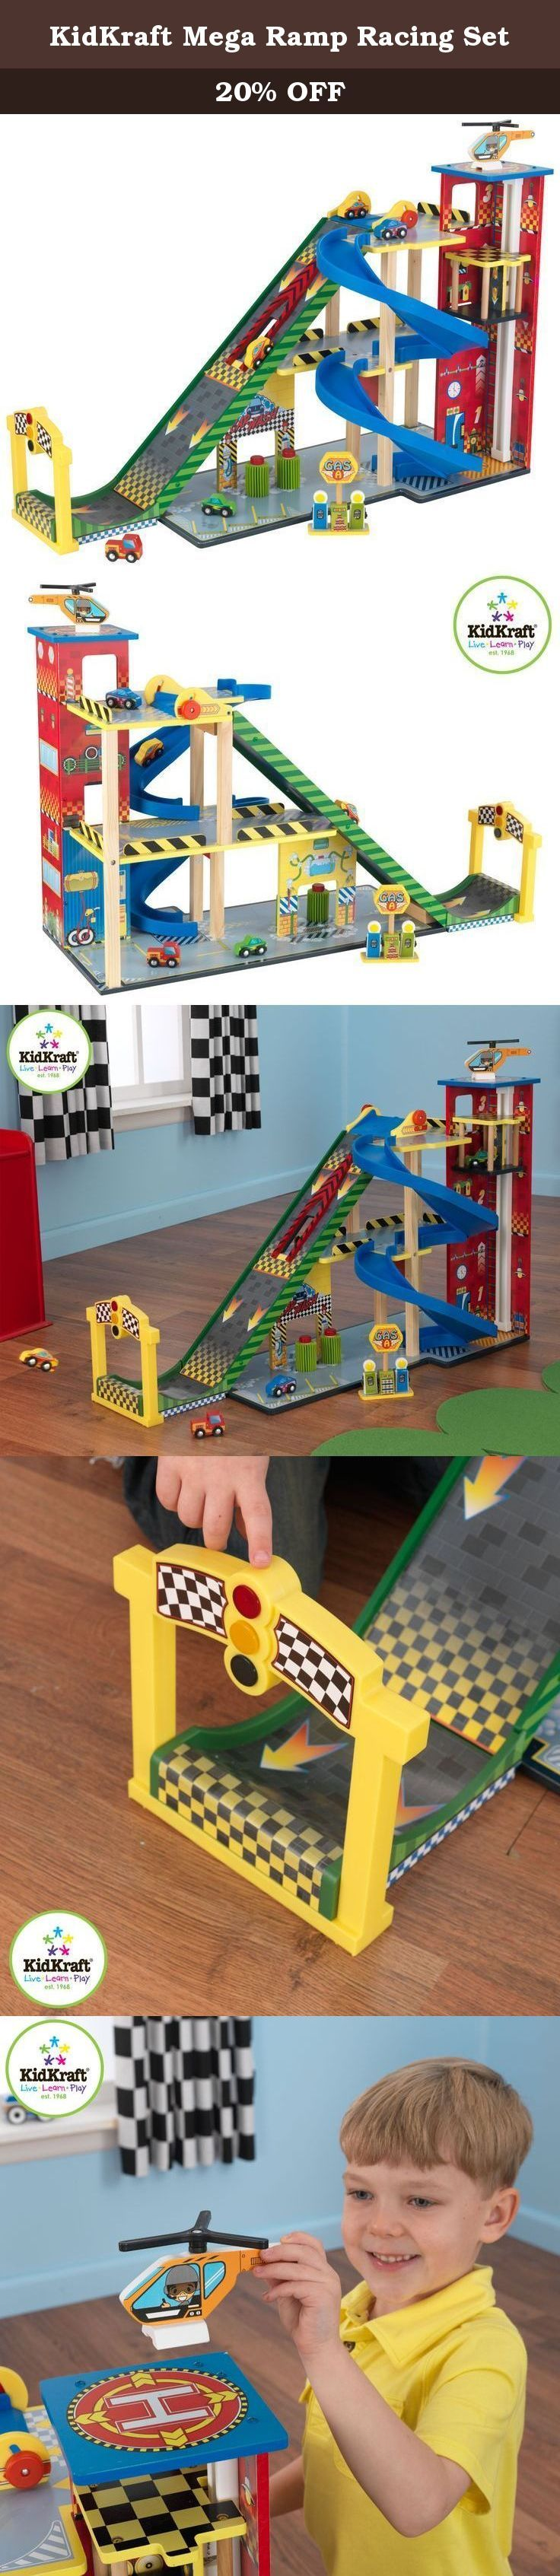 """KidKraft Mega Ramp Racing Set. The Kid Kraft Mega Ramp Racing Set gives young kids an awesome one-stop shop for all of their favorite toy cars. It's a speedy ramp, a parking garage, an elevator, a car wash and a gas station all in one convenient package. The centerpiece of this jumbo-sized racing set is its three-level """"Mega Ramp,"""" which launches cars high in the air after they build up momentum. There's even a launch pad that kids lower to let the cars go, guaranteeing that they take off…"""